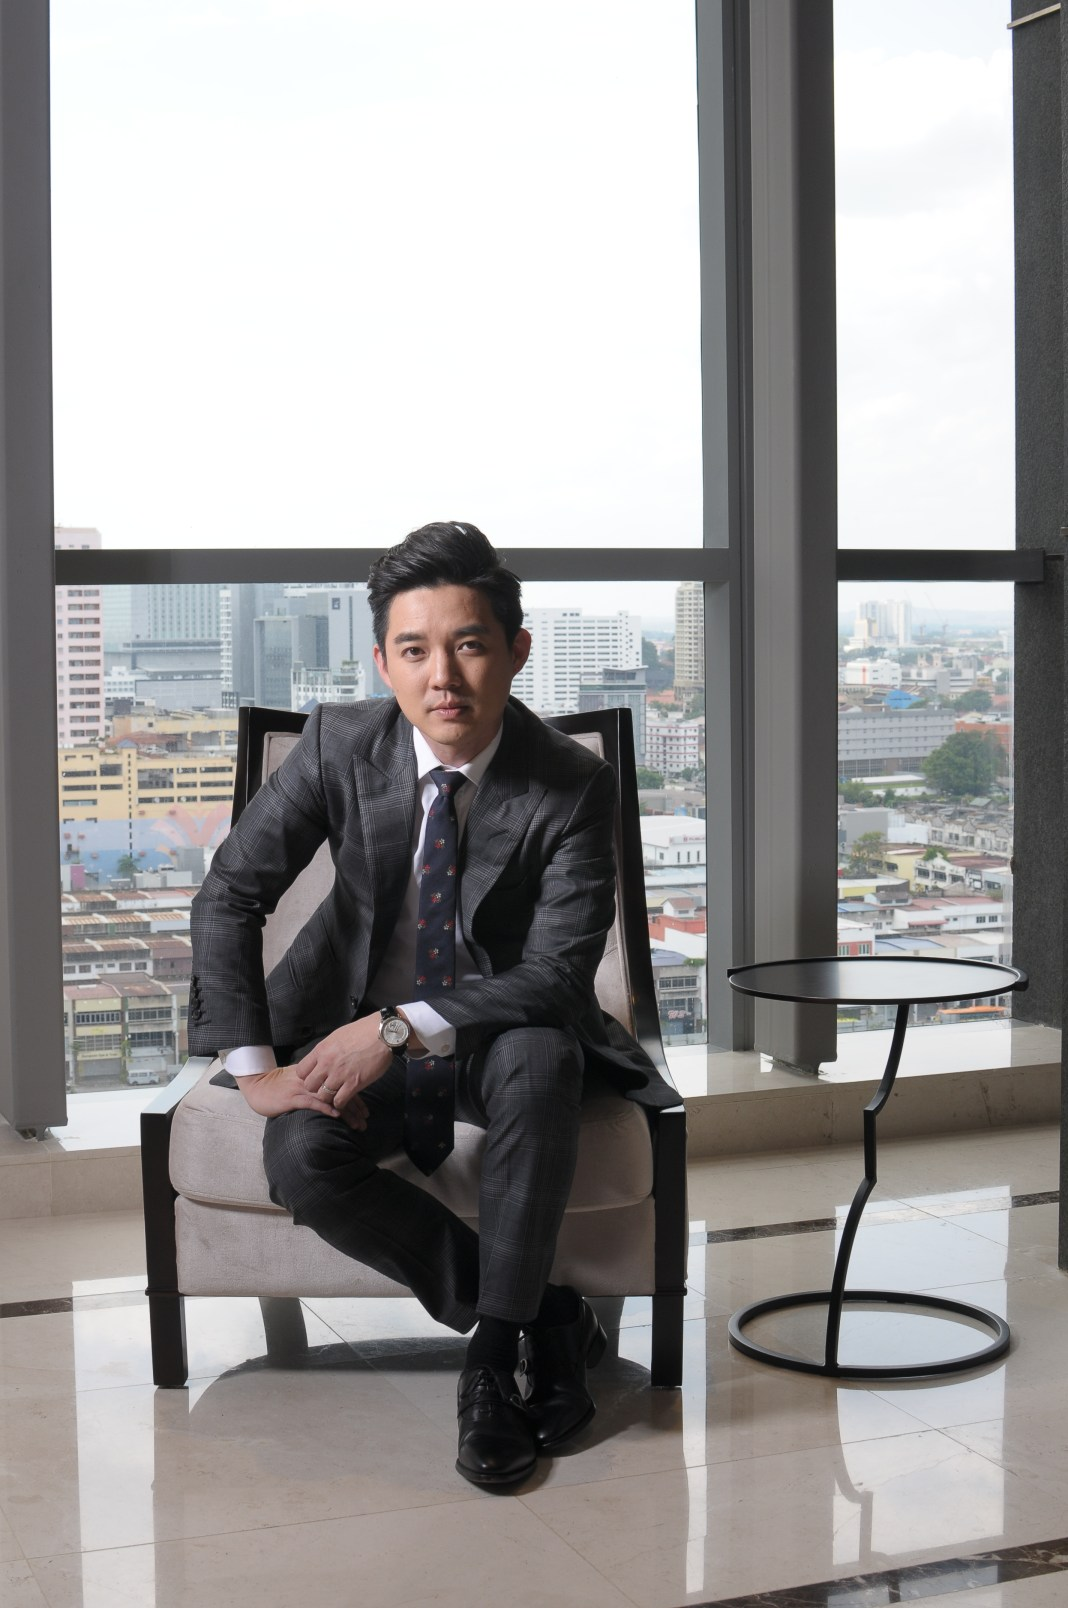 Dato' Colin Tan June Teng, the Group Managing Director of Hatten Group